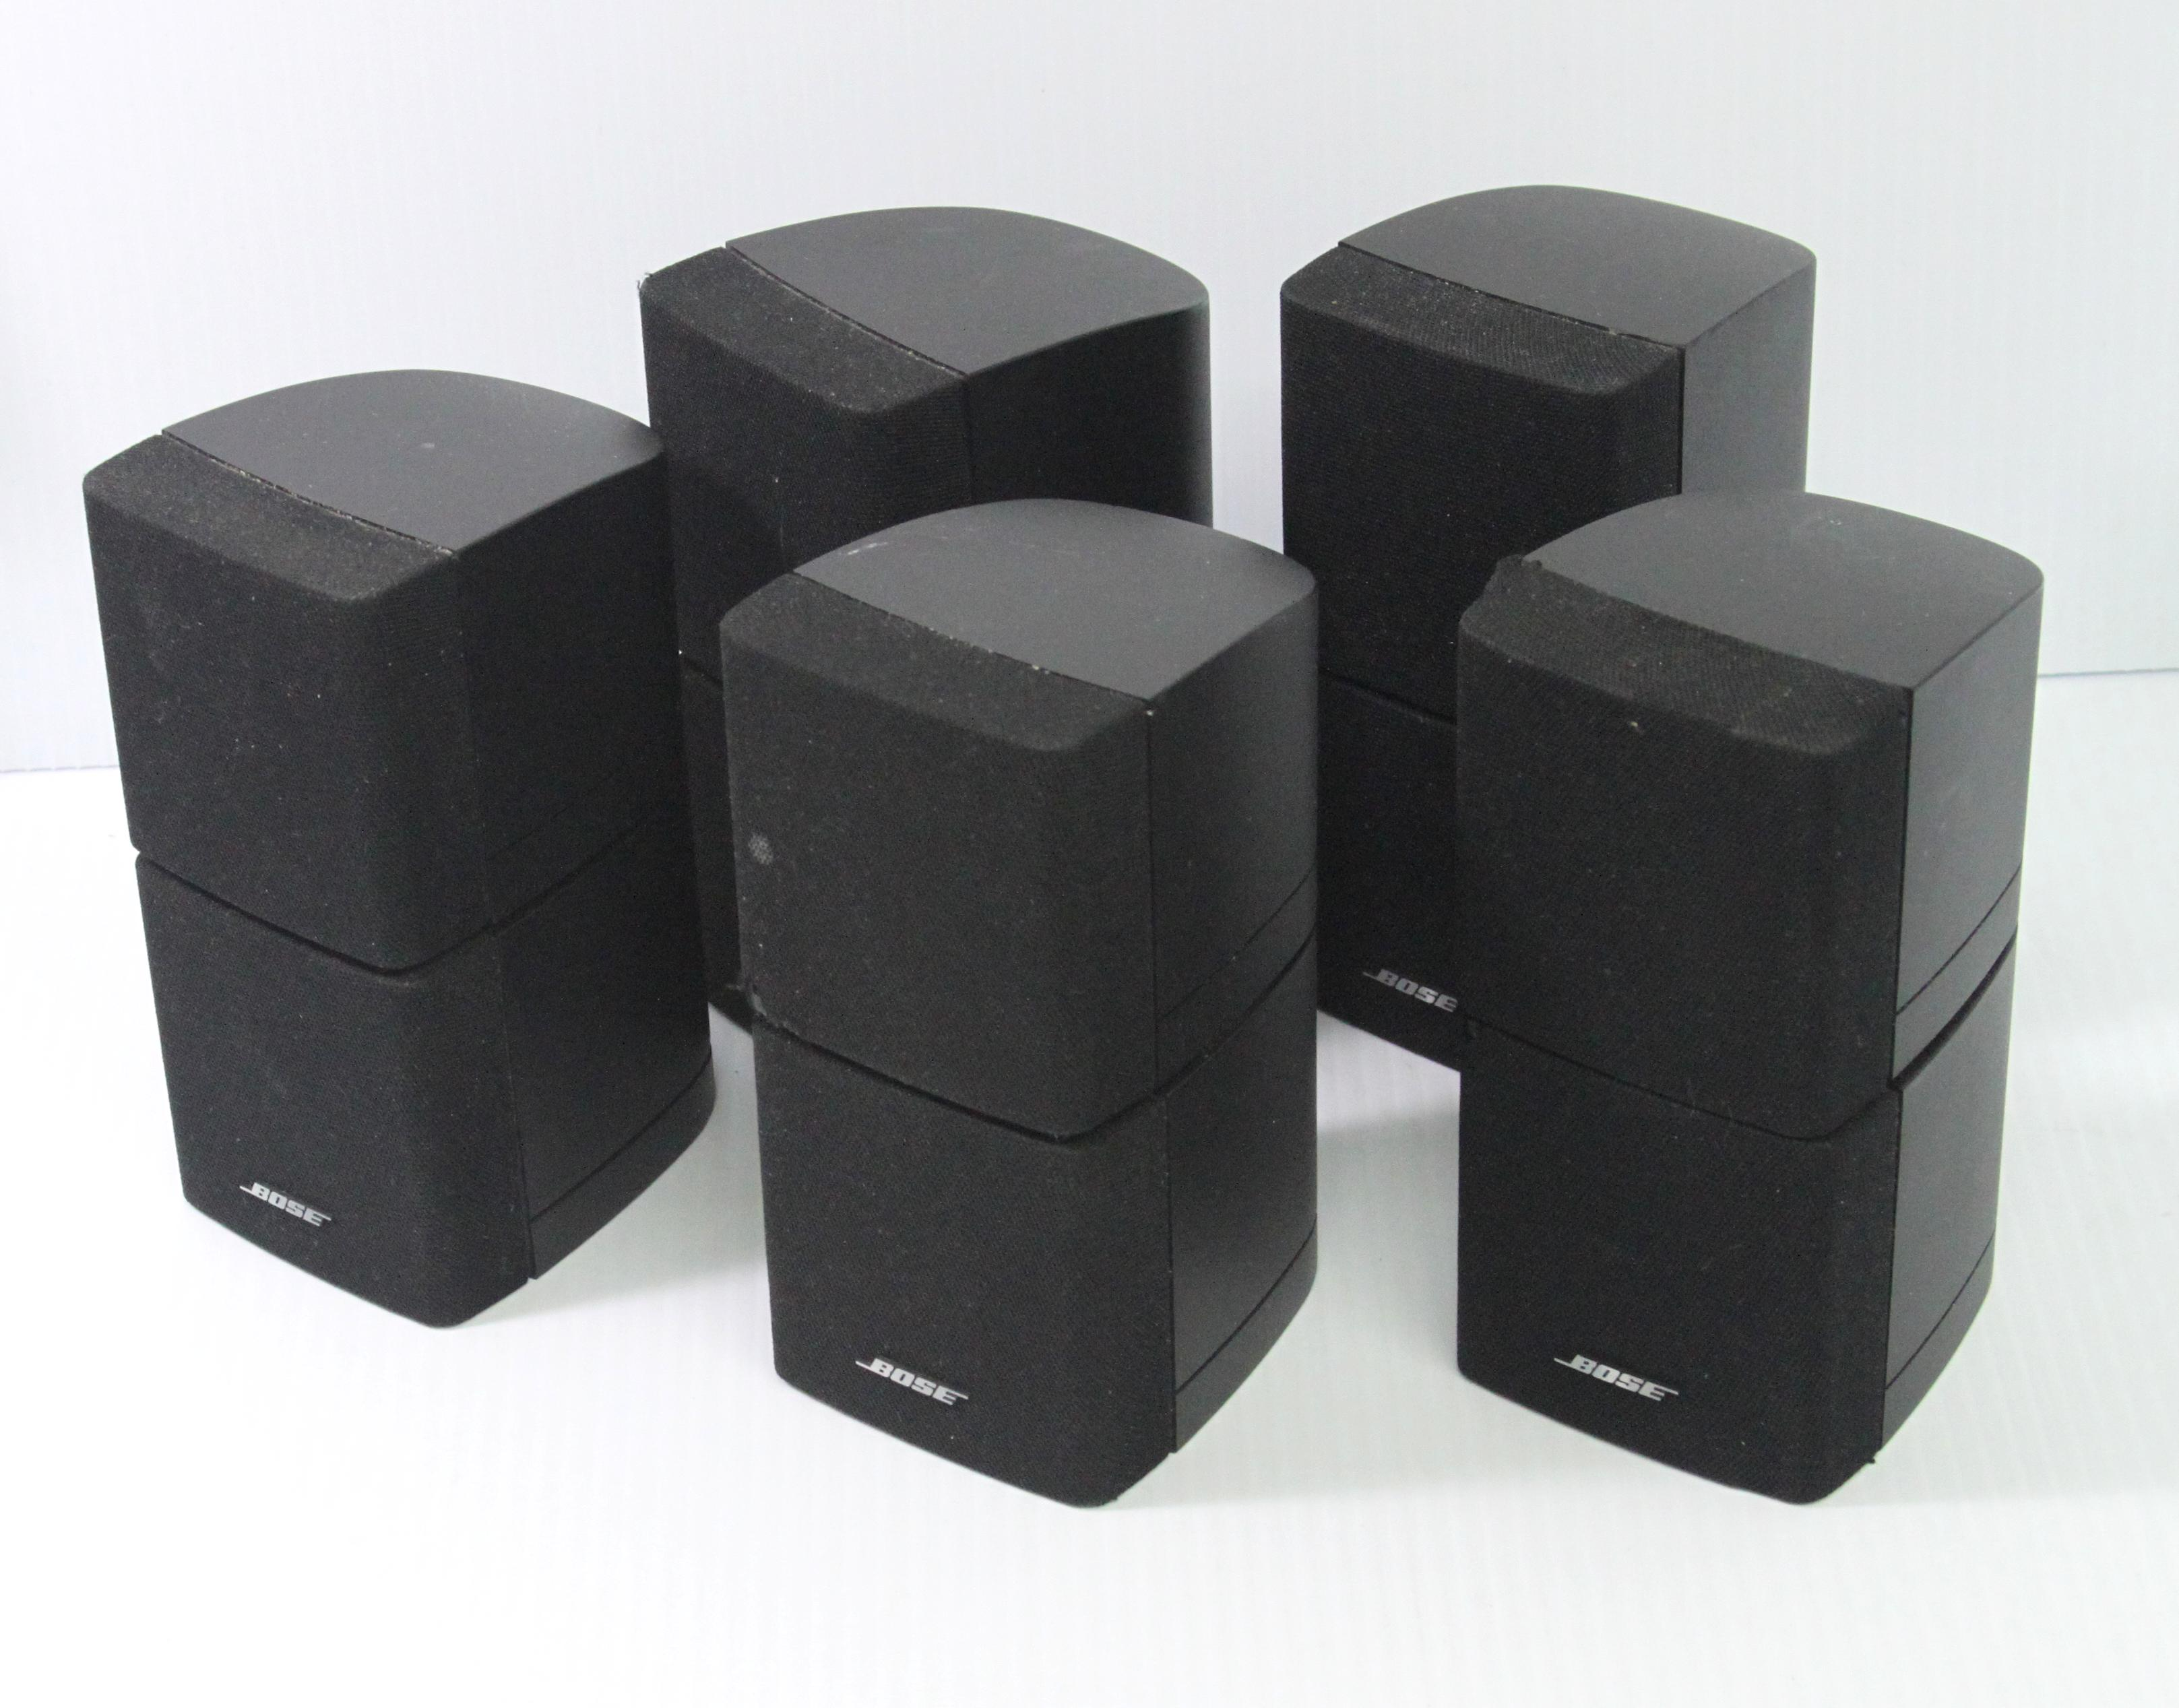 bose lifestyle 12 series ii 2 home theater system ebay. Black Bedroom Furniture Sets. Home Design Ideas